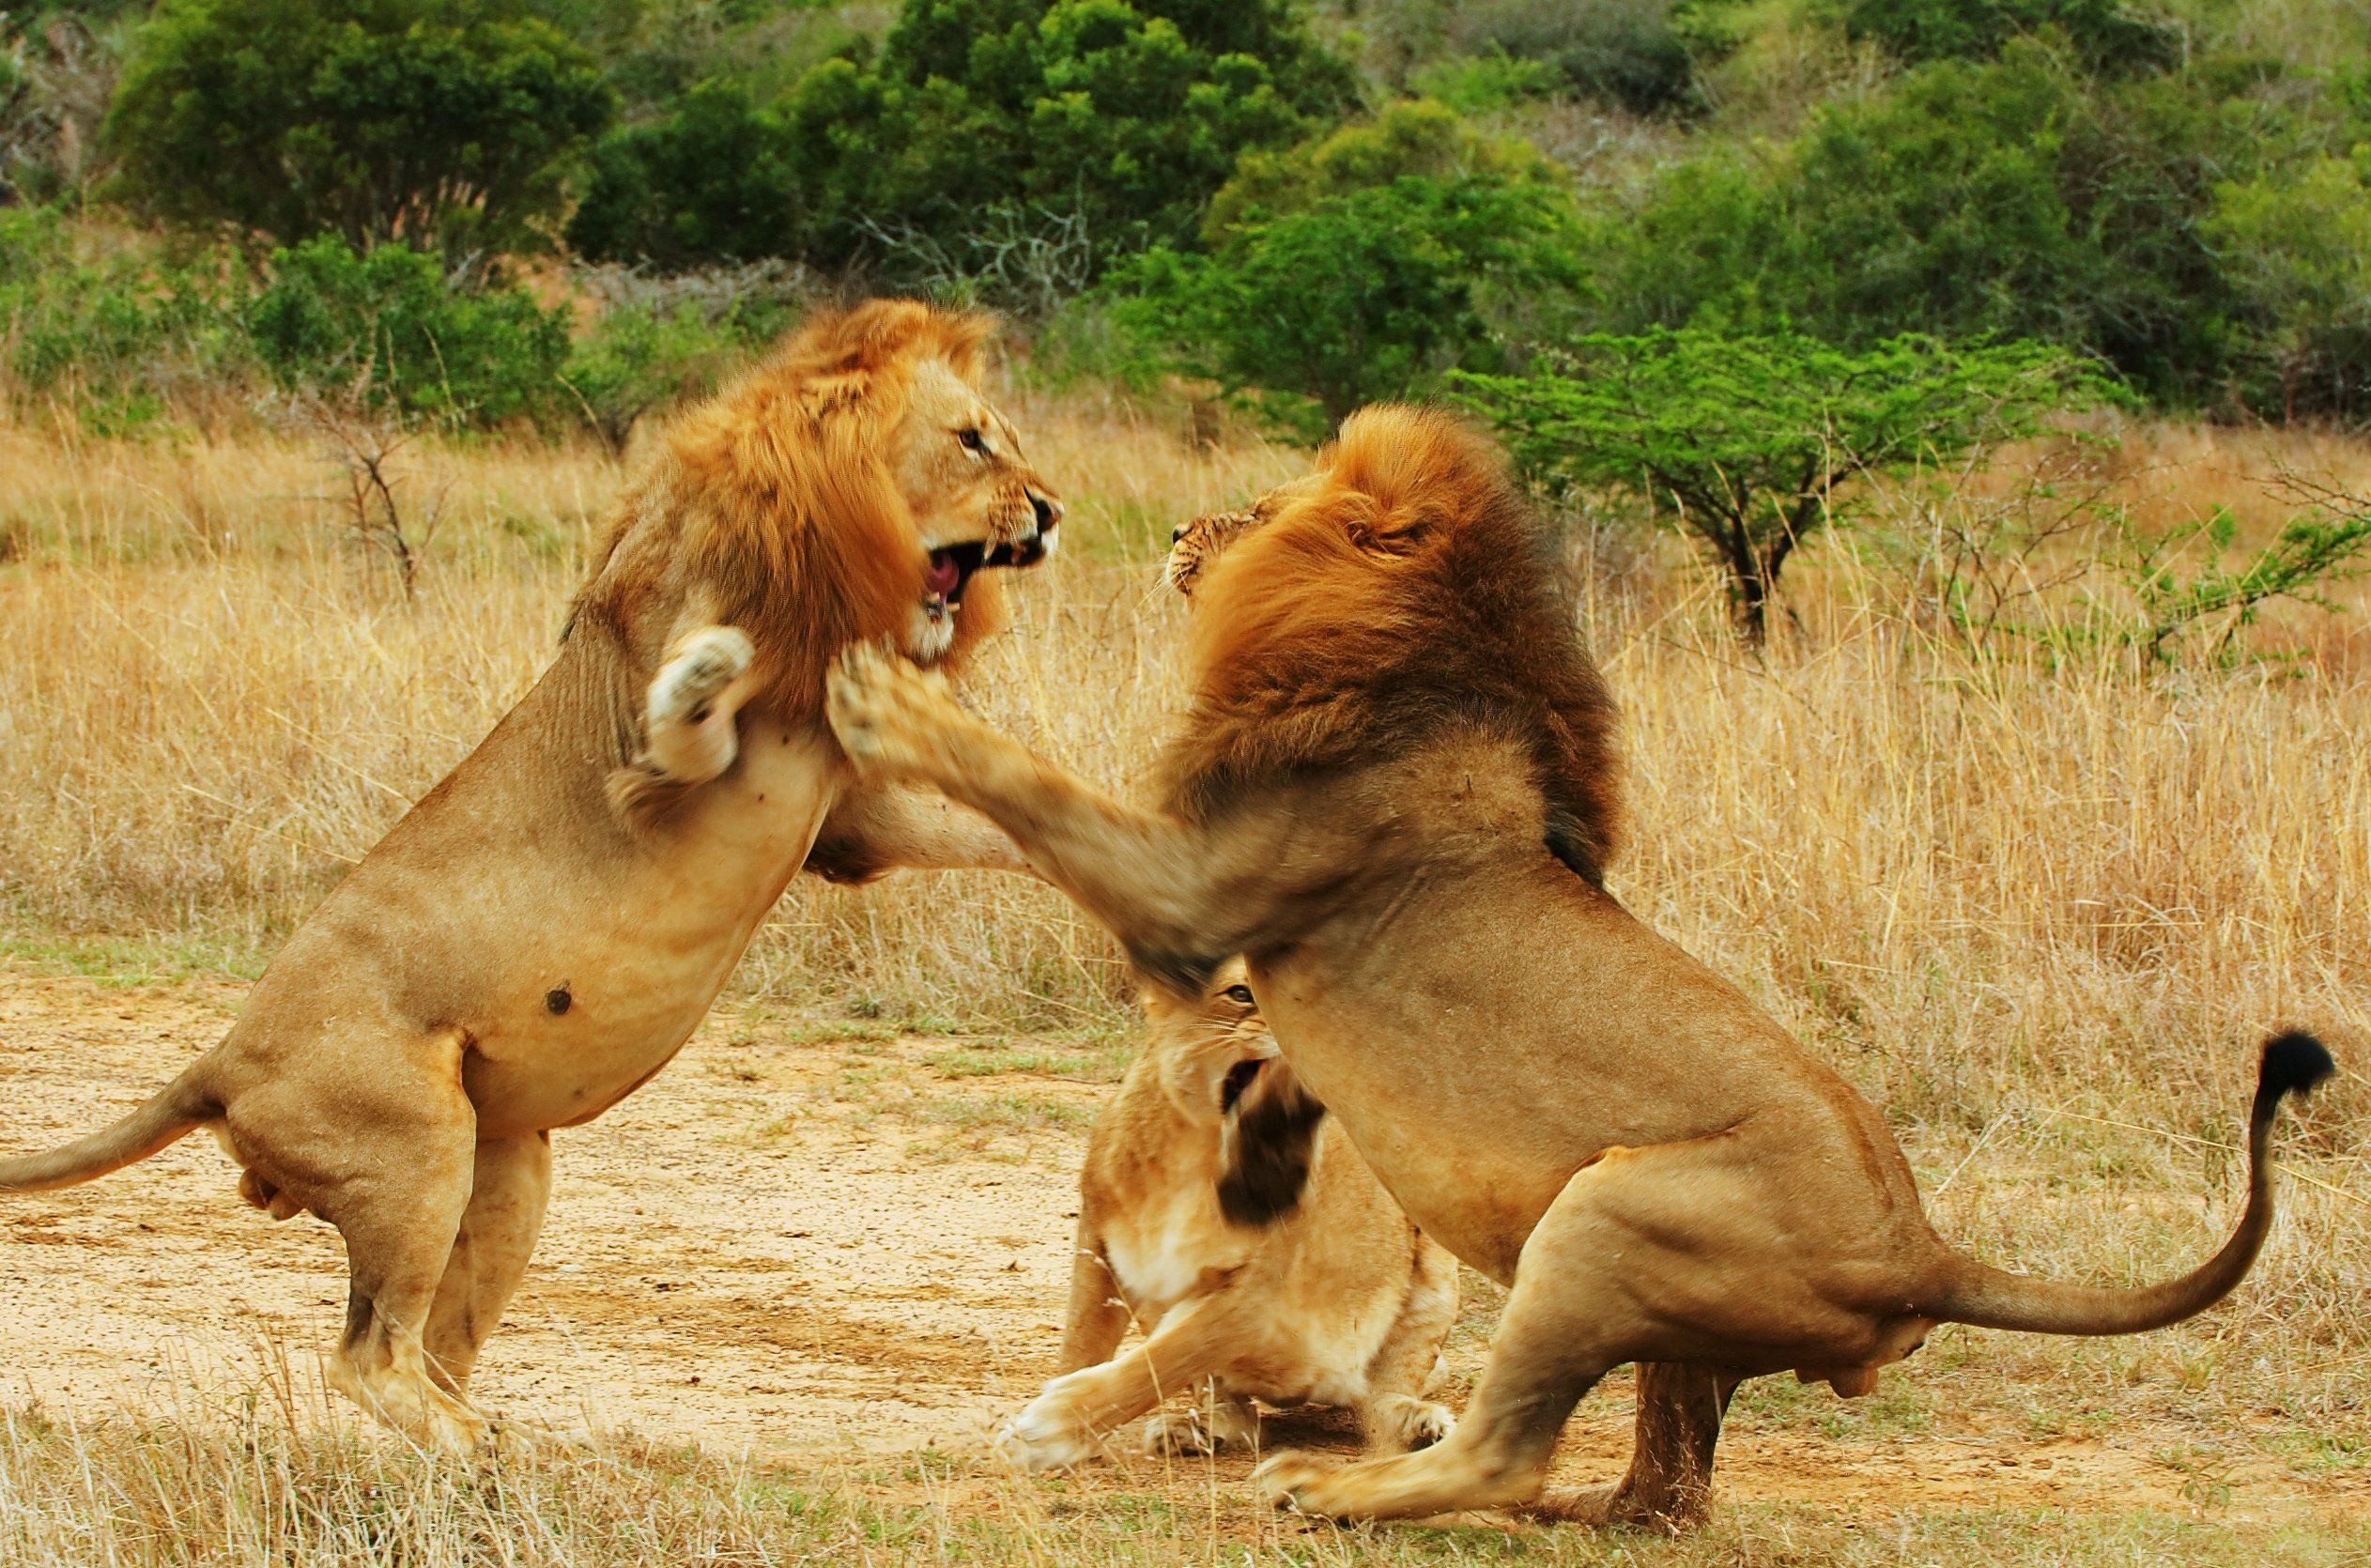 lions fight mmamotivation tattoos amp mma pinterest